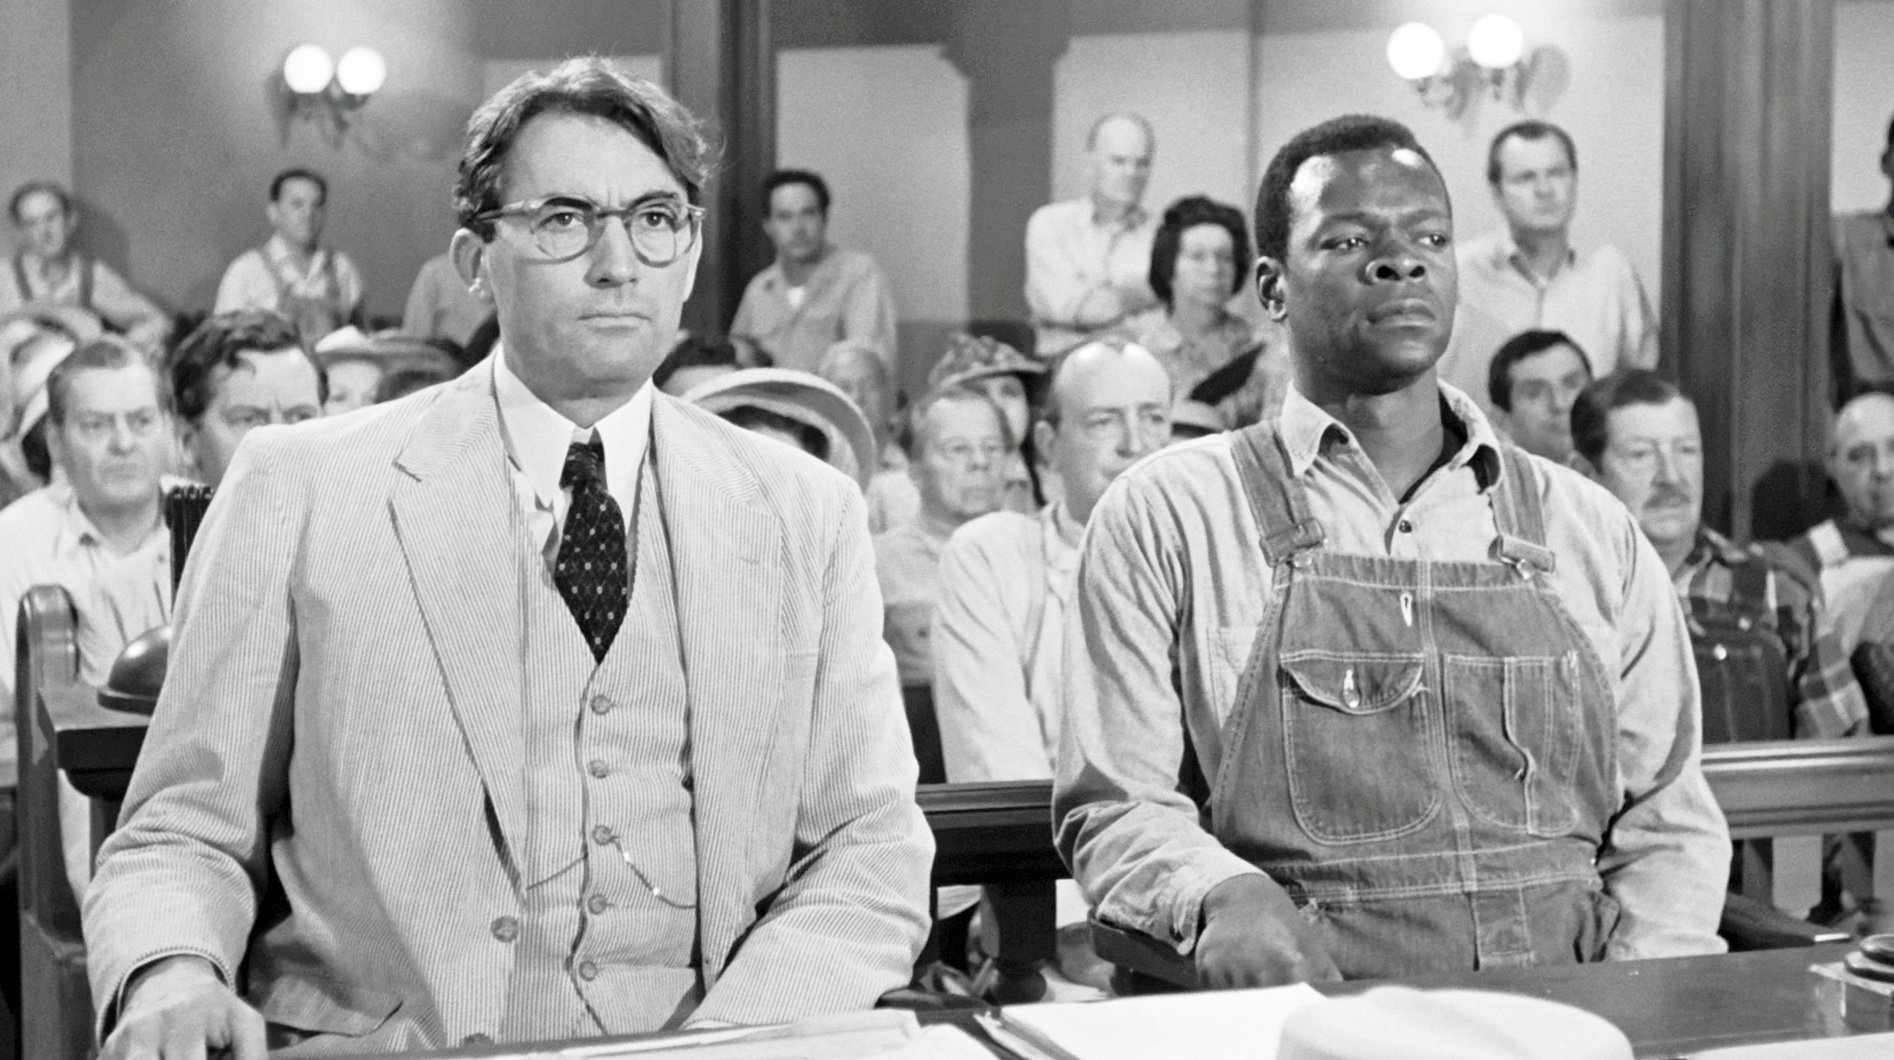 """to kill a mockingbird relationship """"to kill a mockingbird"""" is a great educational book that is written in easy language and shows lots of very important problems of prejudices and self-identification through the kid's eyes."""